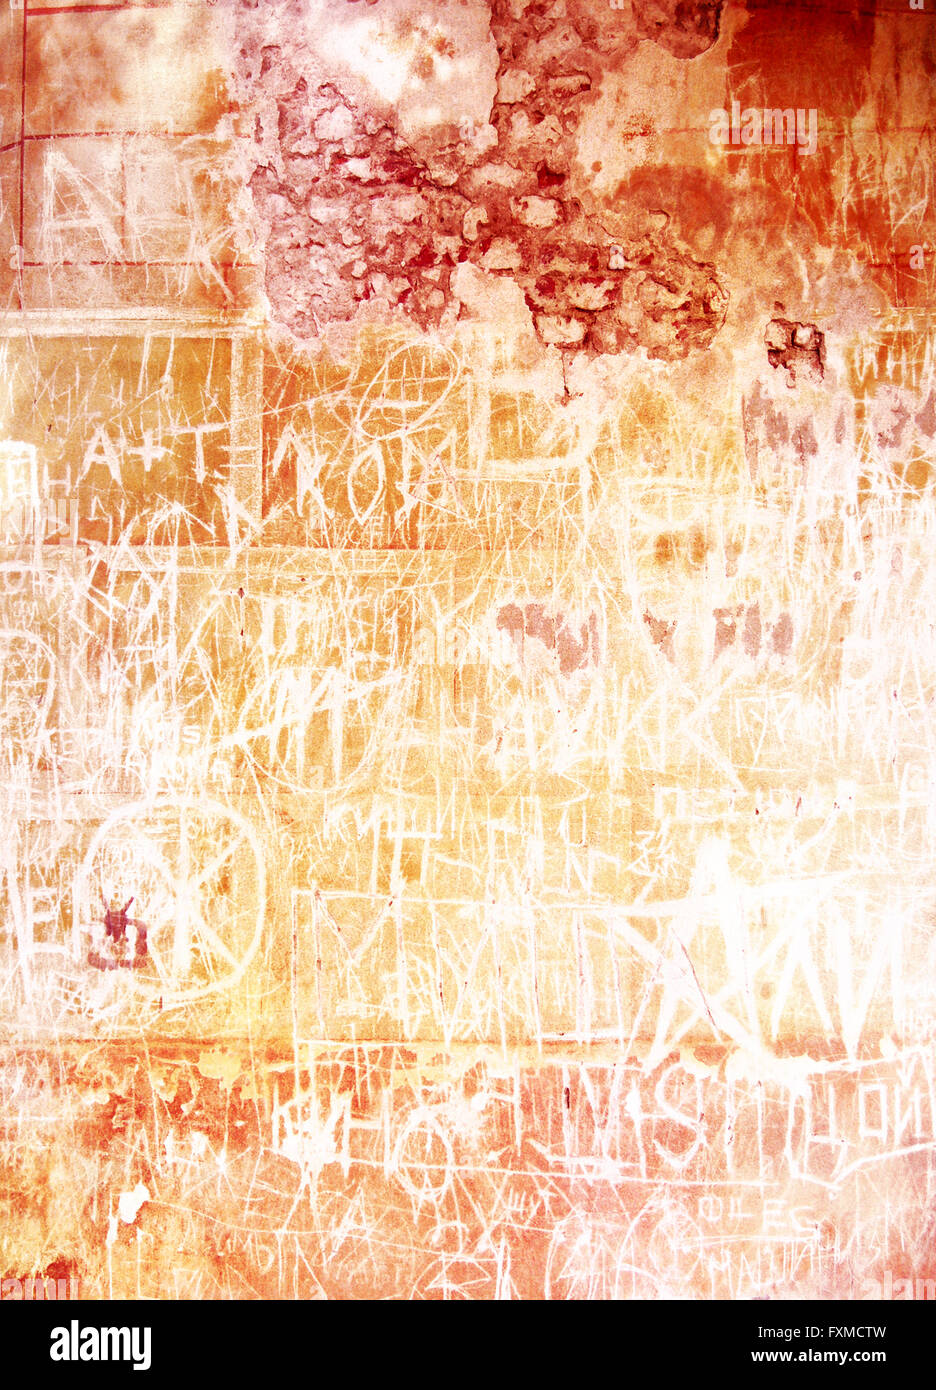 Old inscribed wall: Abstract textured background with red and brown ...